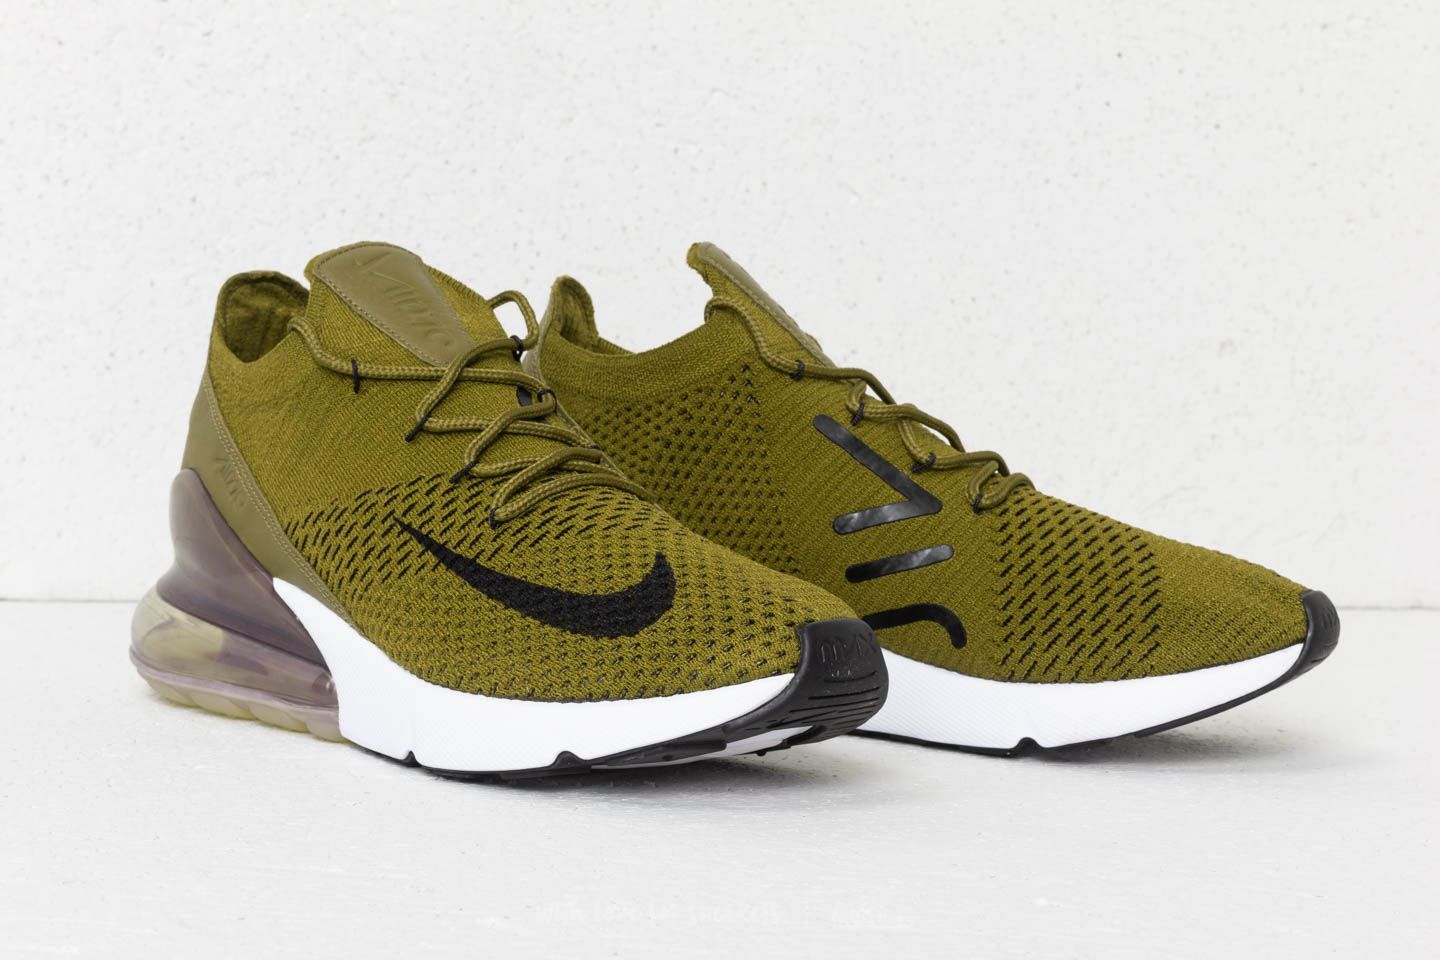 sneakers for cheap be031 ded93 Nike Air Max 270 Flyknit Olive Flak  Black-Sepia Stone    211   nike  airmax   running  olive  sneakers